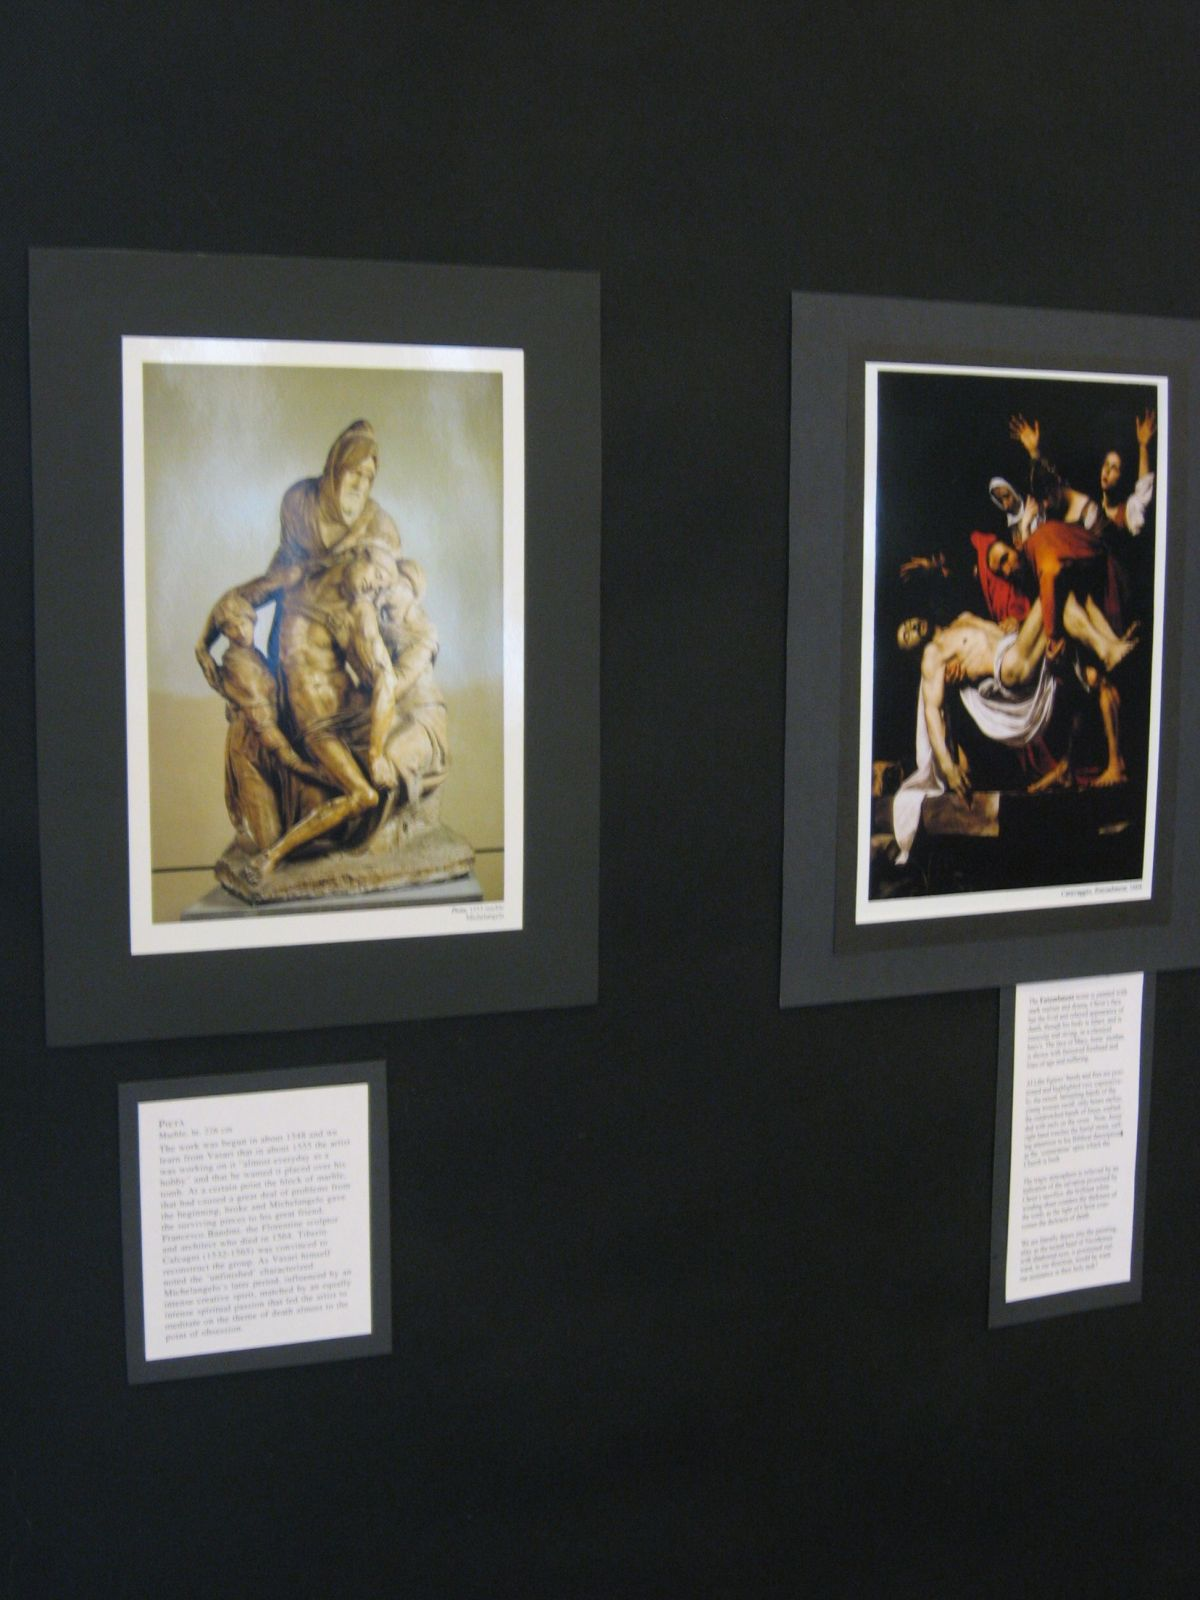 Close-up, Michelangelo and Caravaggio reproductions